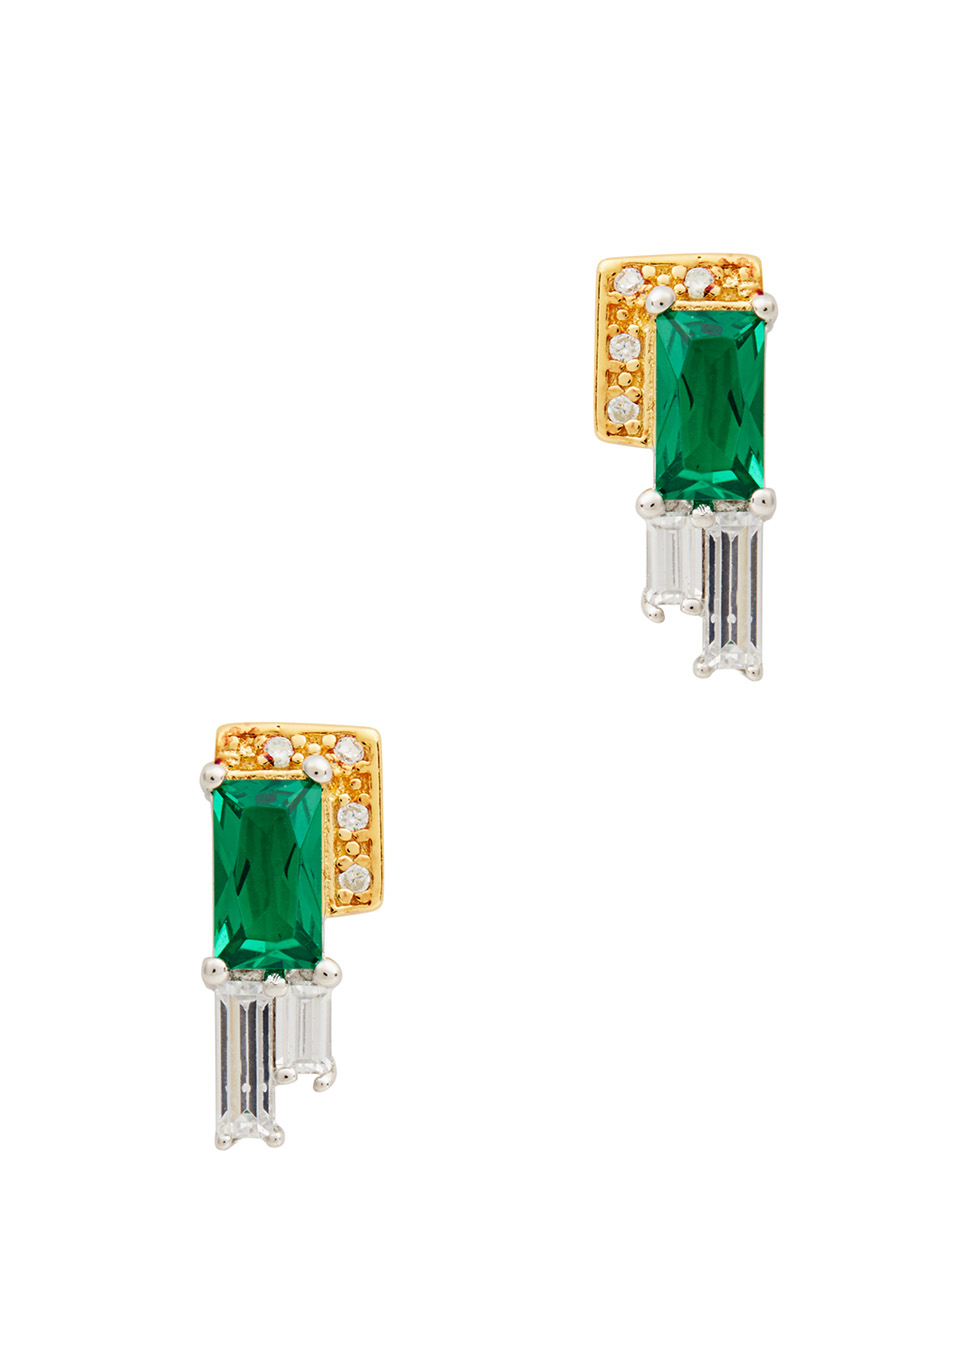 V JEWELLERY AUDREY GOLD AND RHODIUM-PLATED EARRINGS